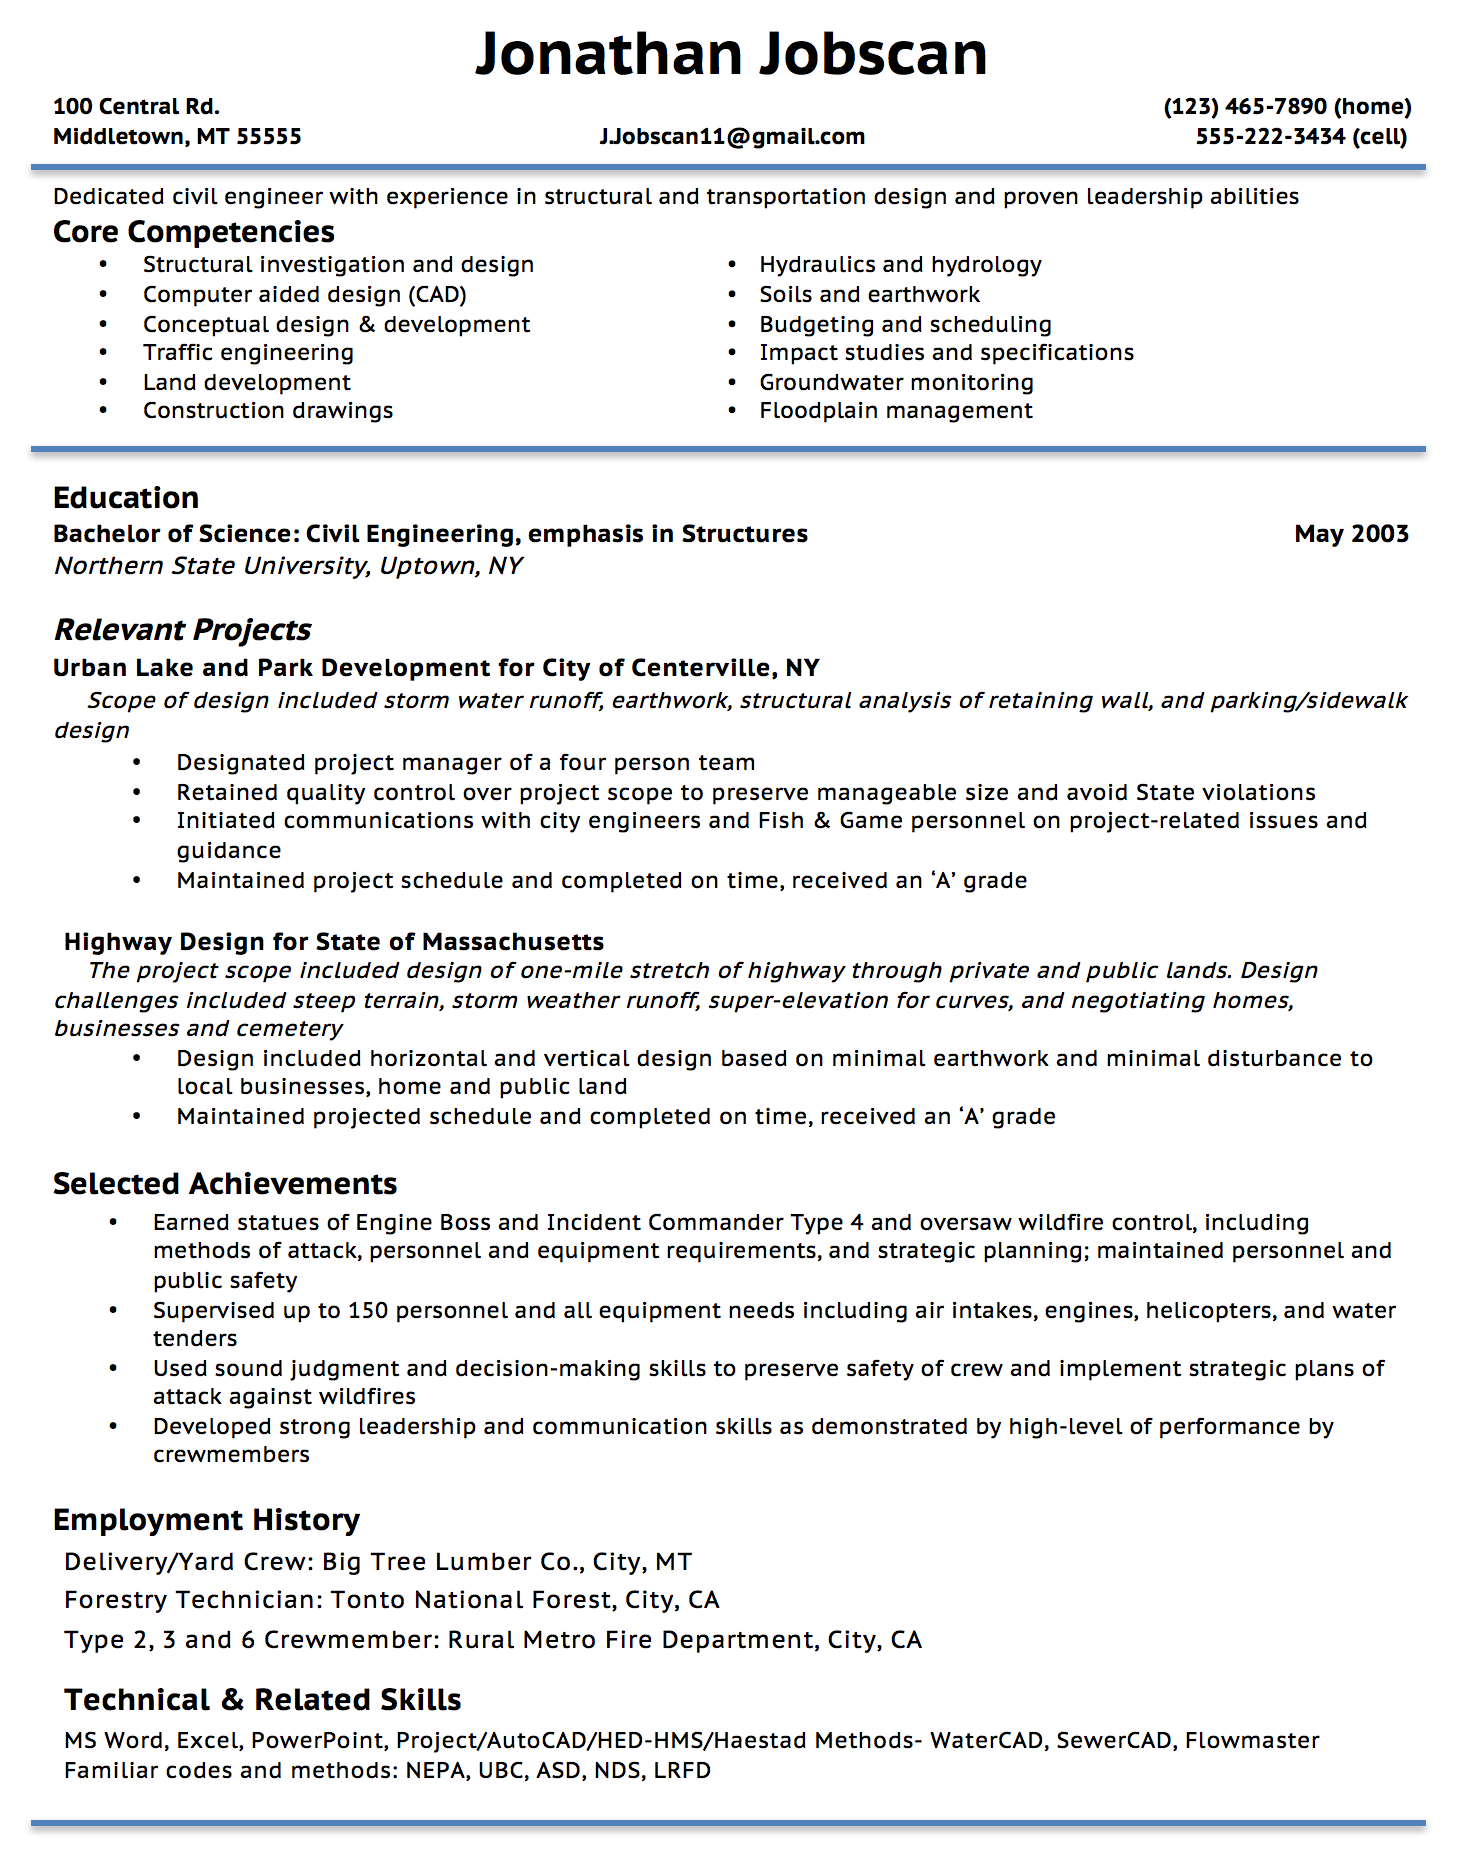 Opposenewapstandardsus  Wonderful Resume Writing Guide  Jobscan With Engaging Example Of A Functional Resume Format With Delectable Marketing Resume Template Also Your Resume In Addition Server Responsibilities Resume And Job Application Resume As Well As Resume Examples For High School Students Additionally Resume Accounting From Jobscanco With Opposenewapstandardsus  Engaging Resume Writing Guide  Jobscan With Delectable Example Of A Functional Resume Format And Wonderful Marketing Resume Template Also Your Resume In Addition Server Responsibilities Resume From Jobscanco